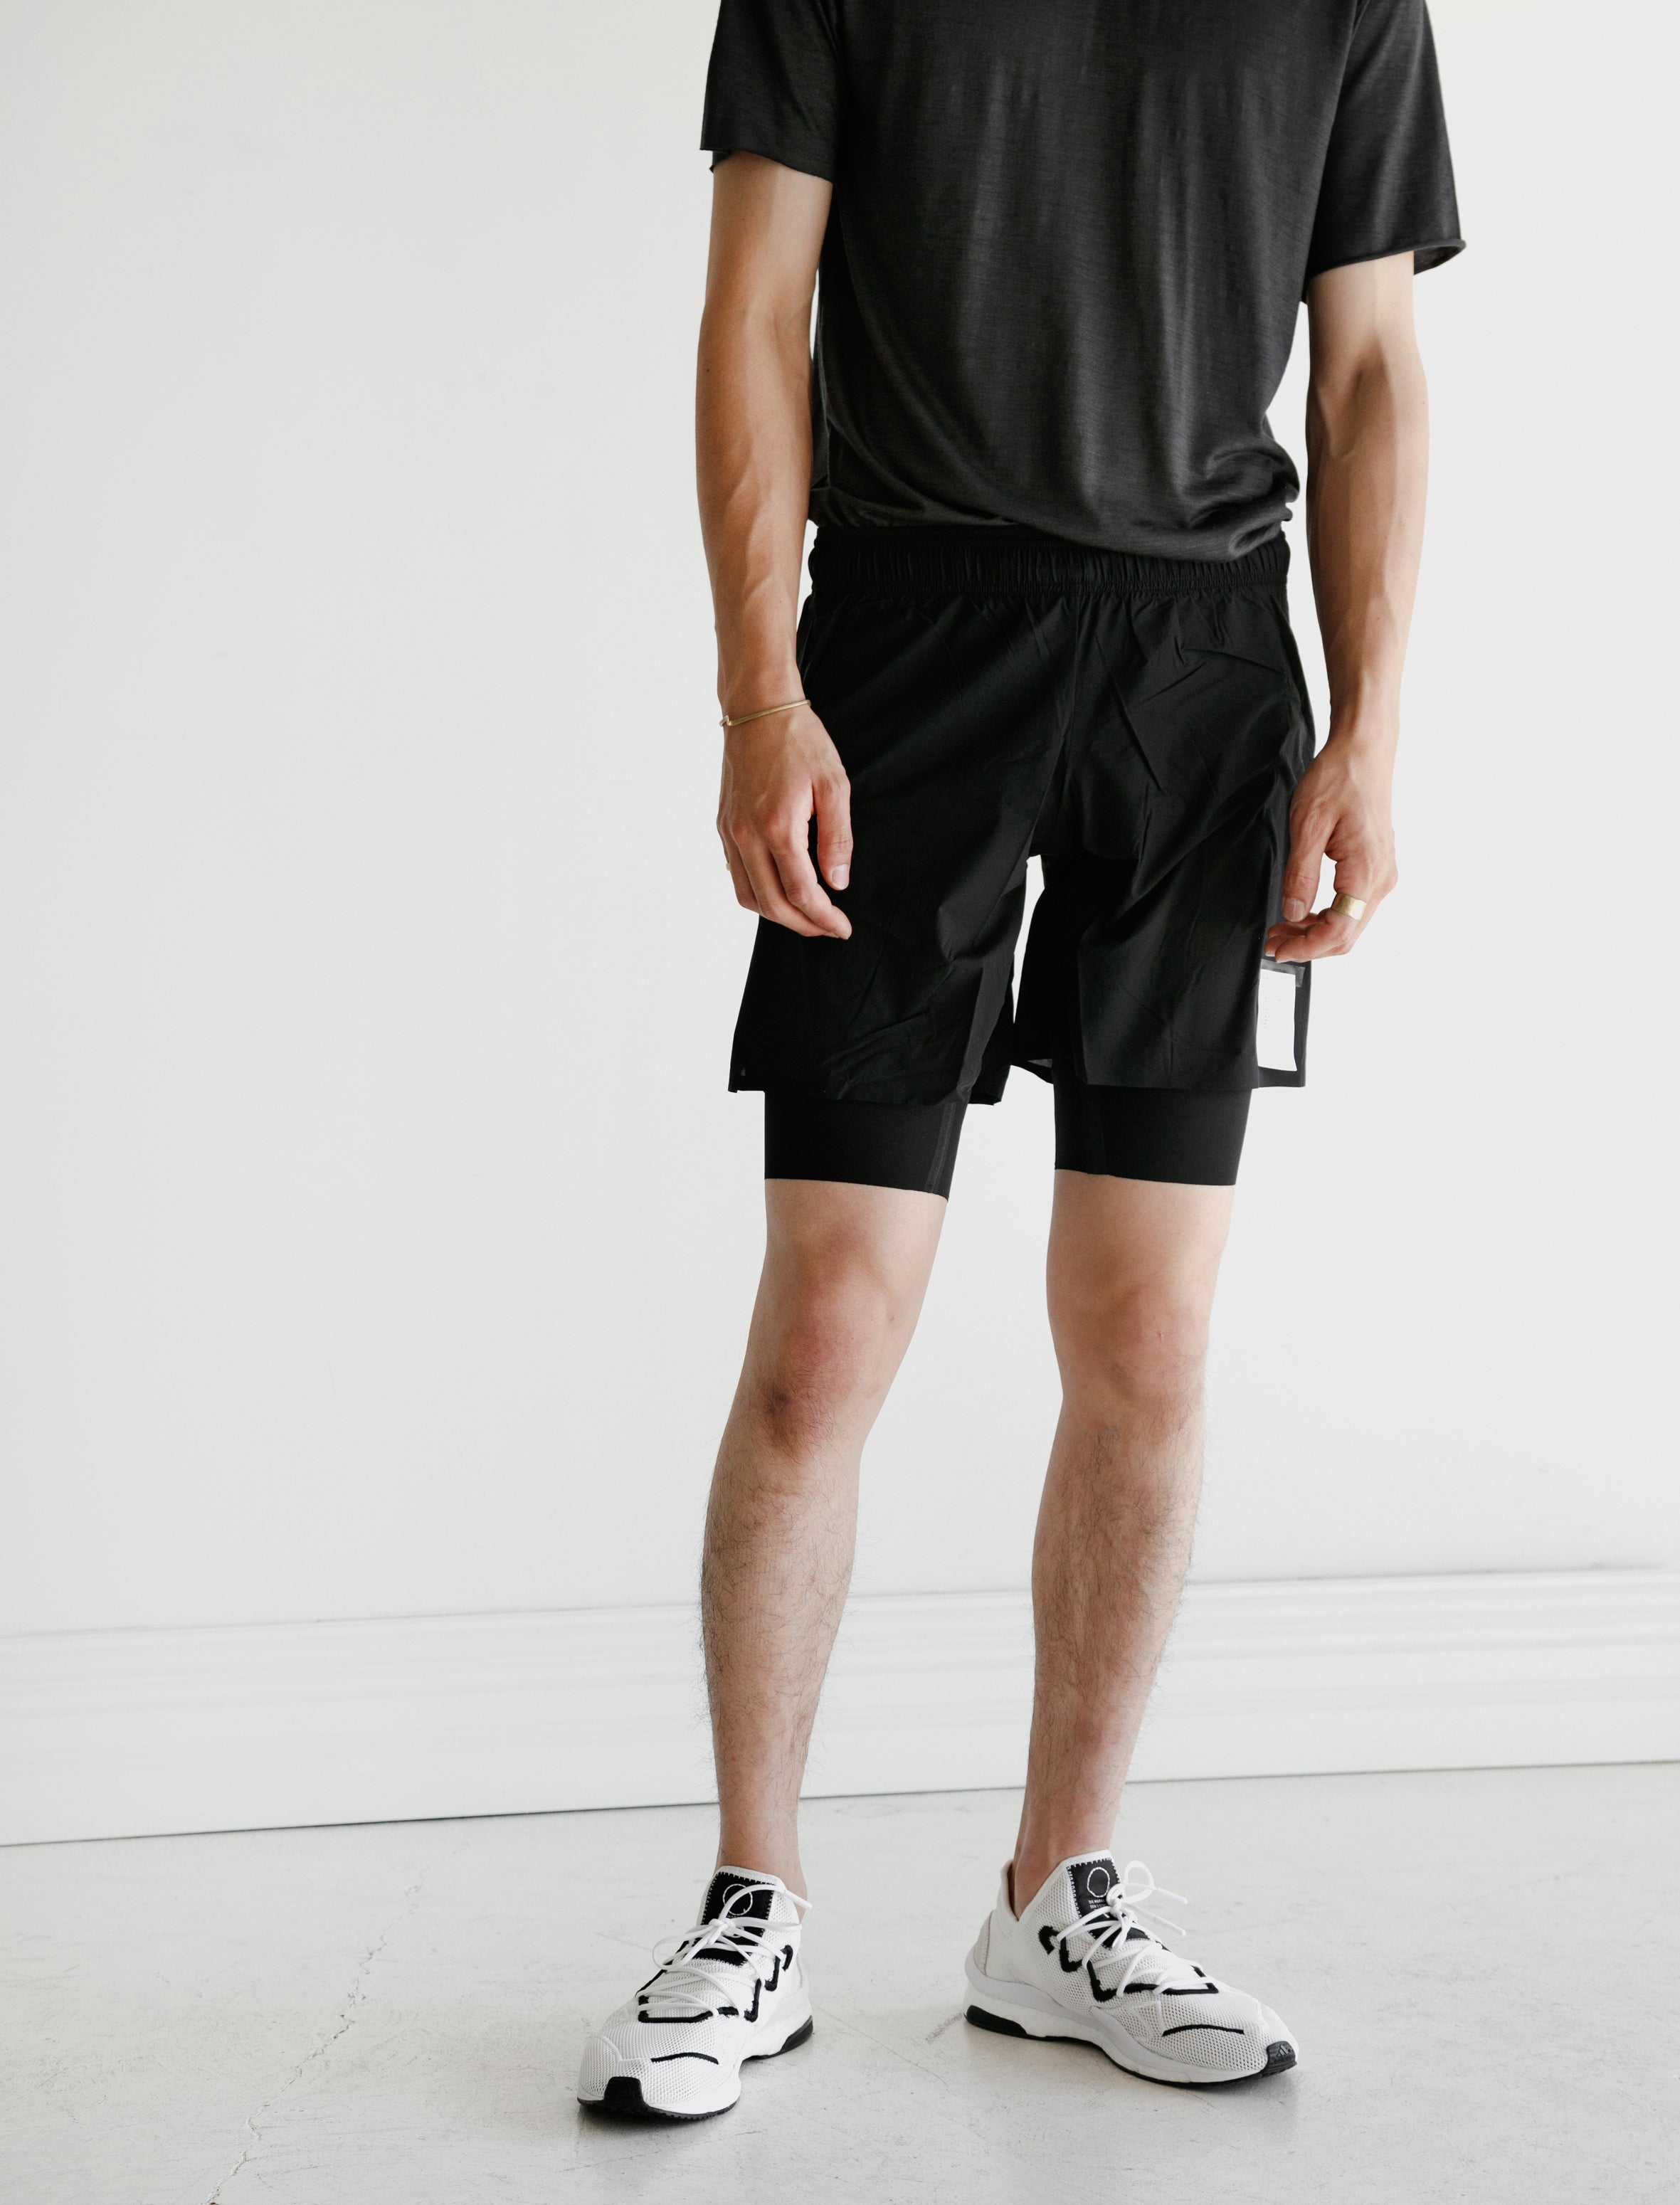 Satisfy Justice Trail 10 Shorts Black